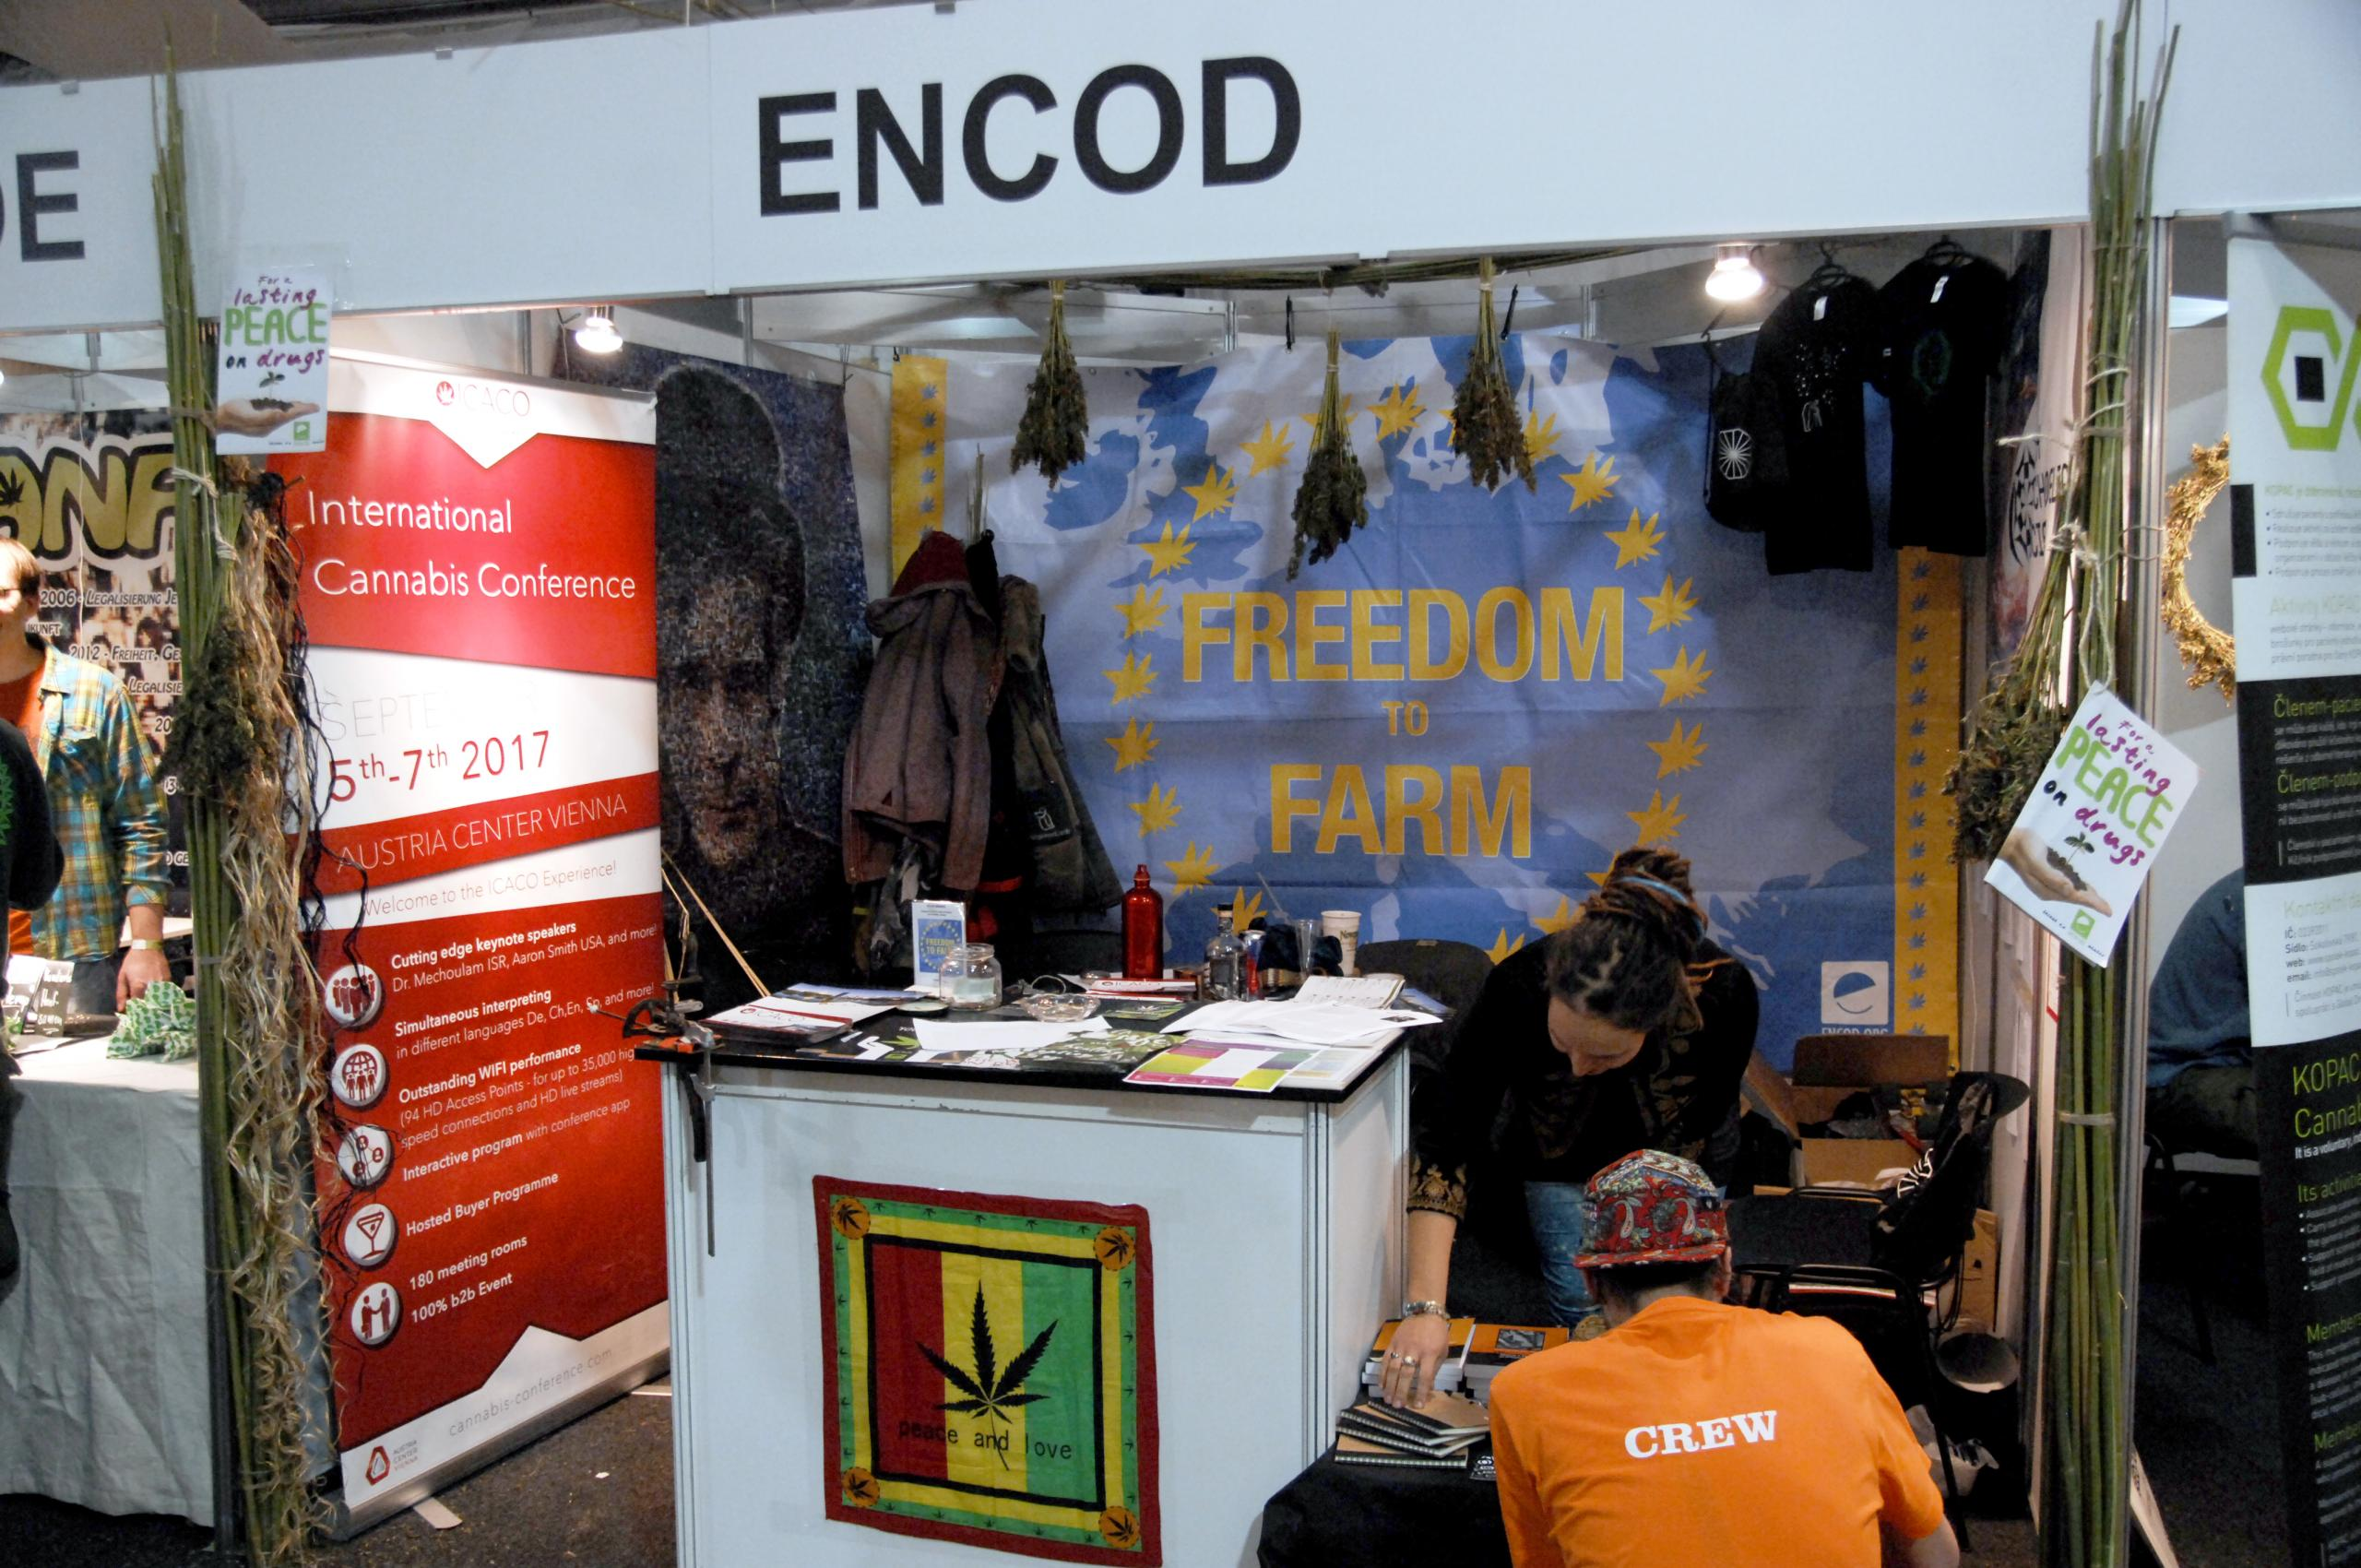 cannafest_2016_encod_stand_photo_derrick_bergman_0236_1_.jpg